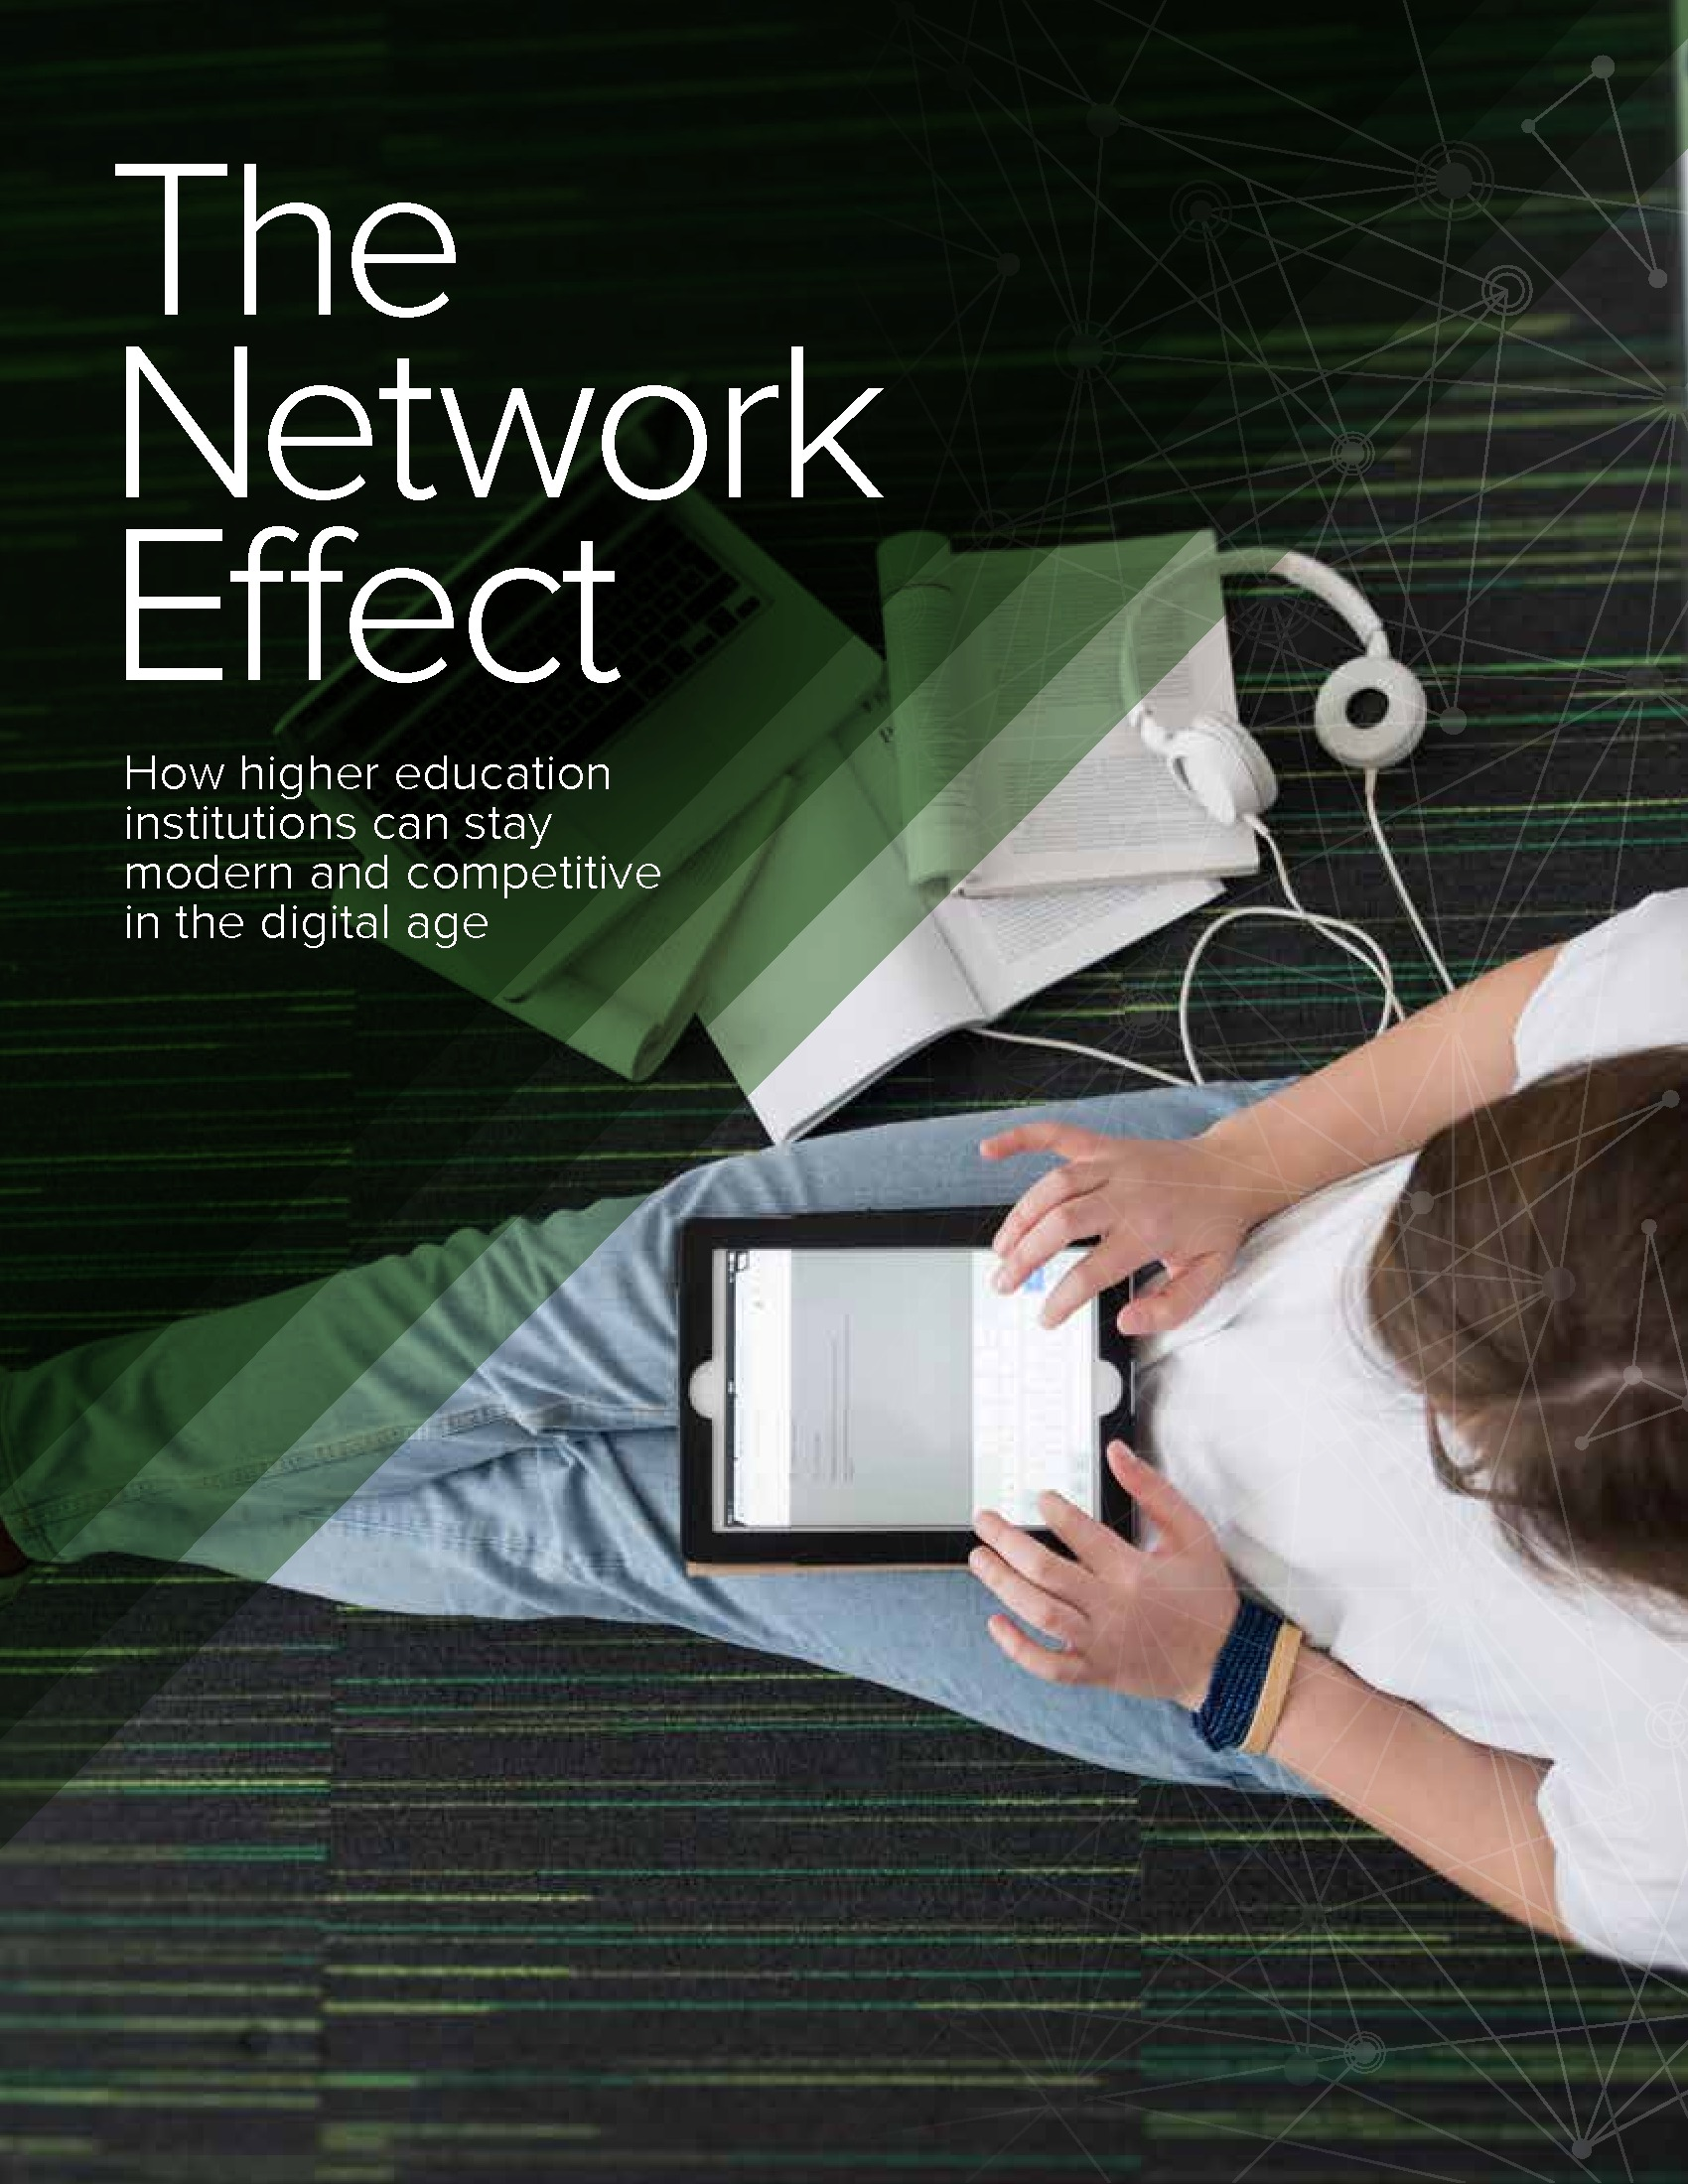 CDE - Cisco Meraki - White Paper - 180711 - The Network Effect